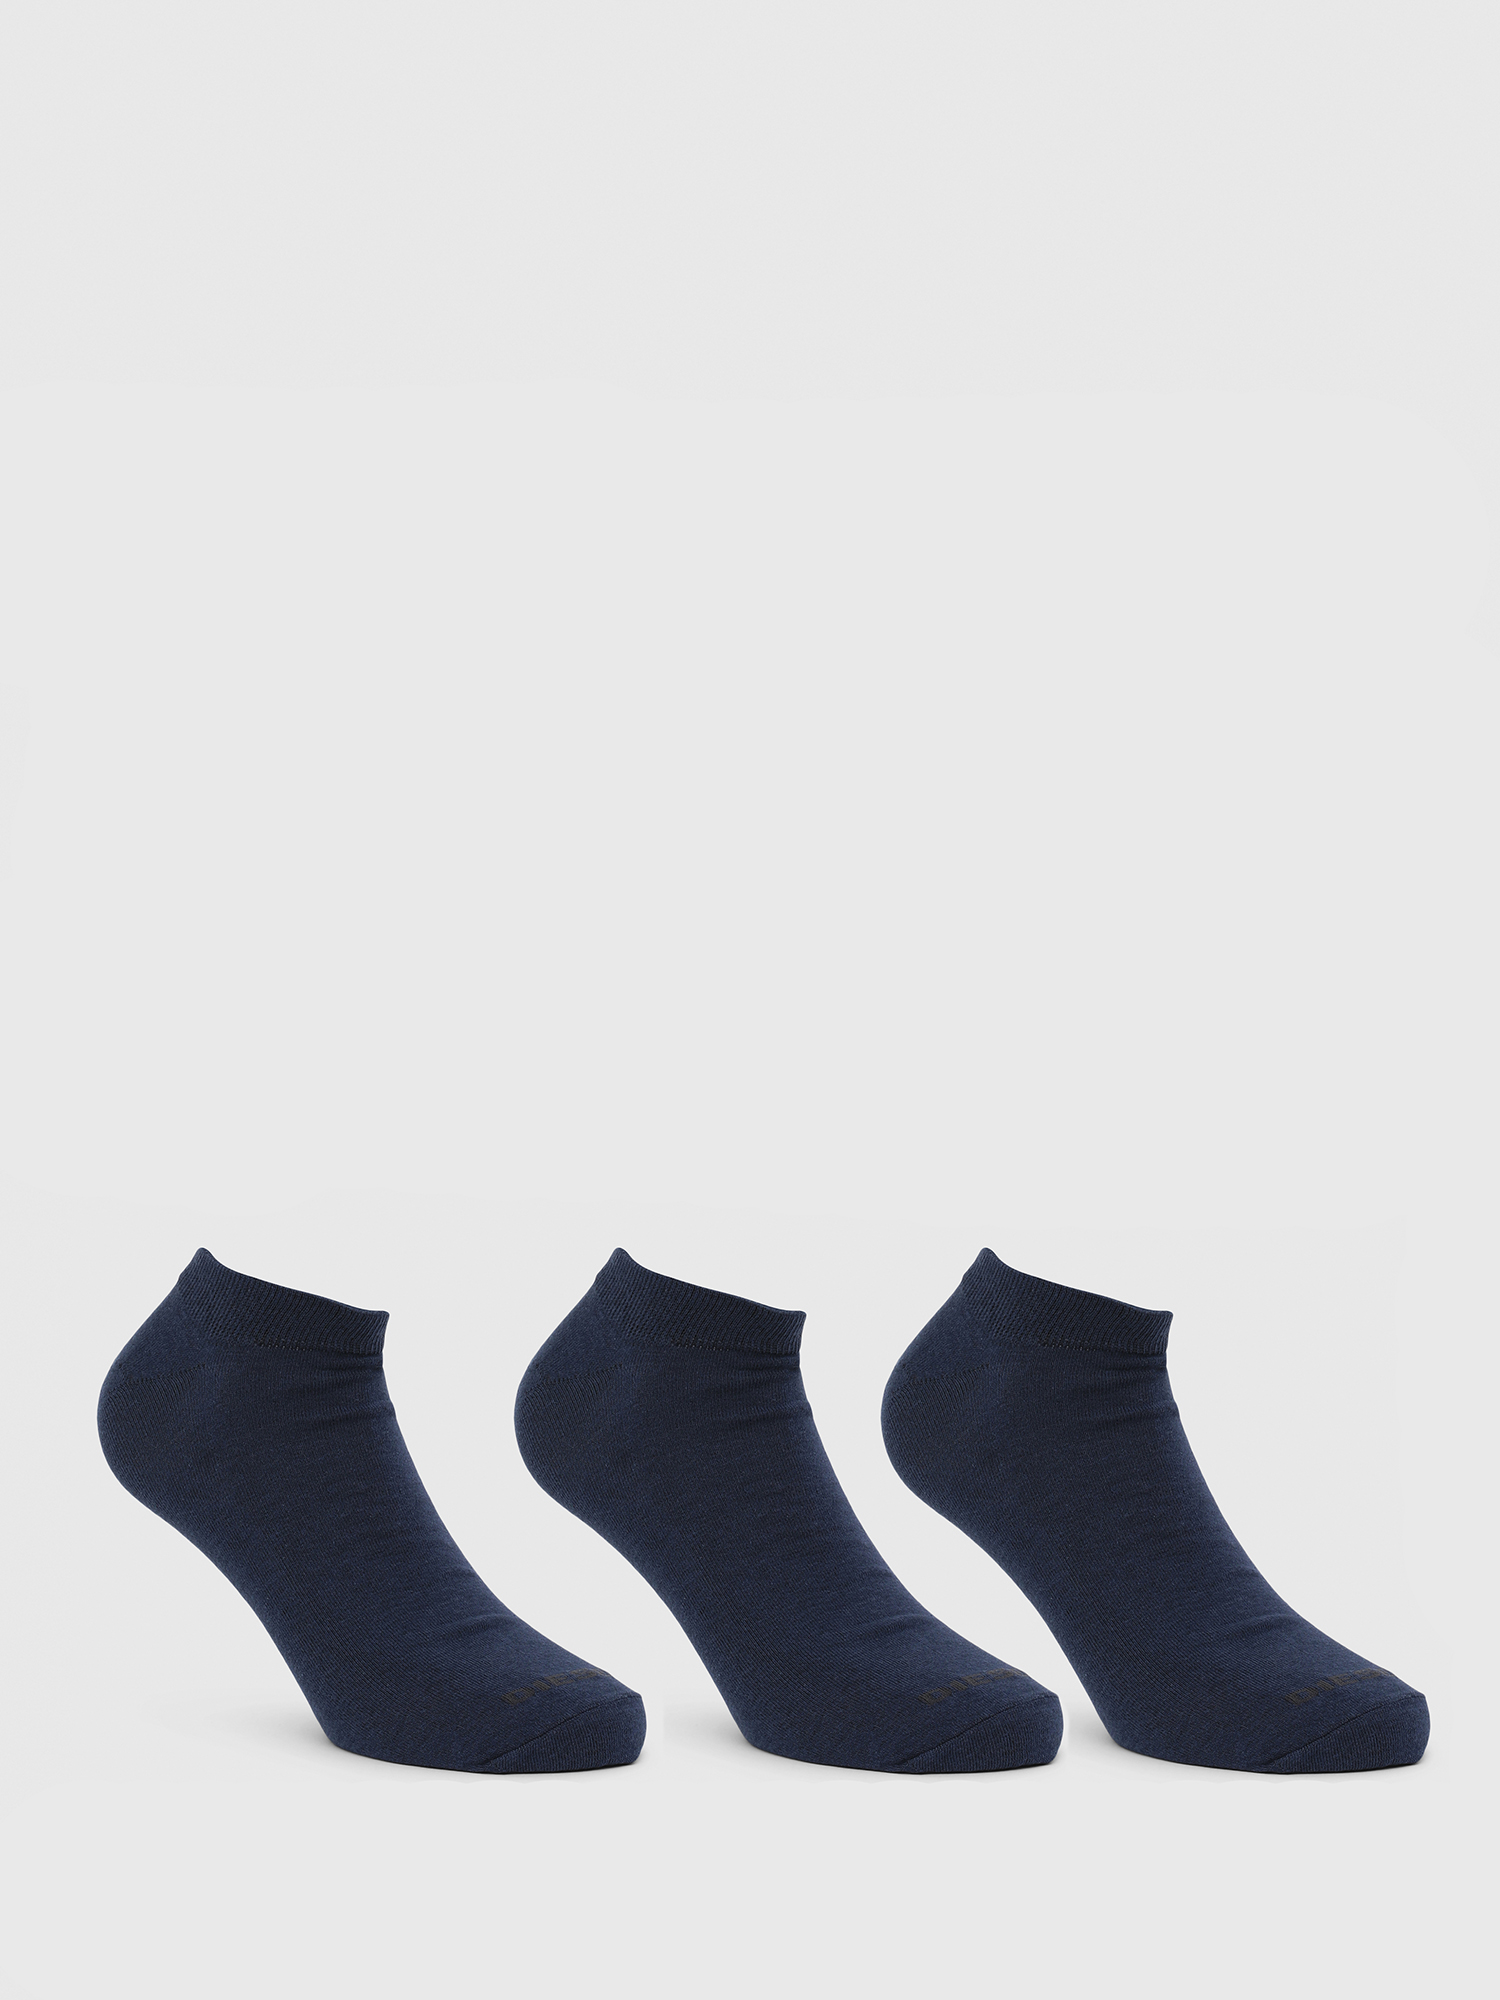 Diesel - SKM-GOST-THREEPACK,  - Chaussettes basses - Image 1